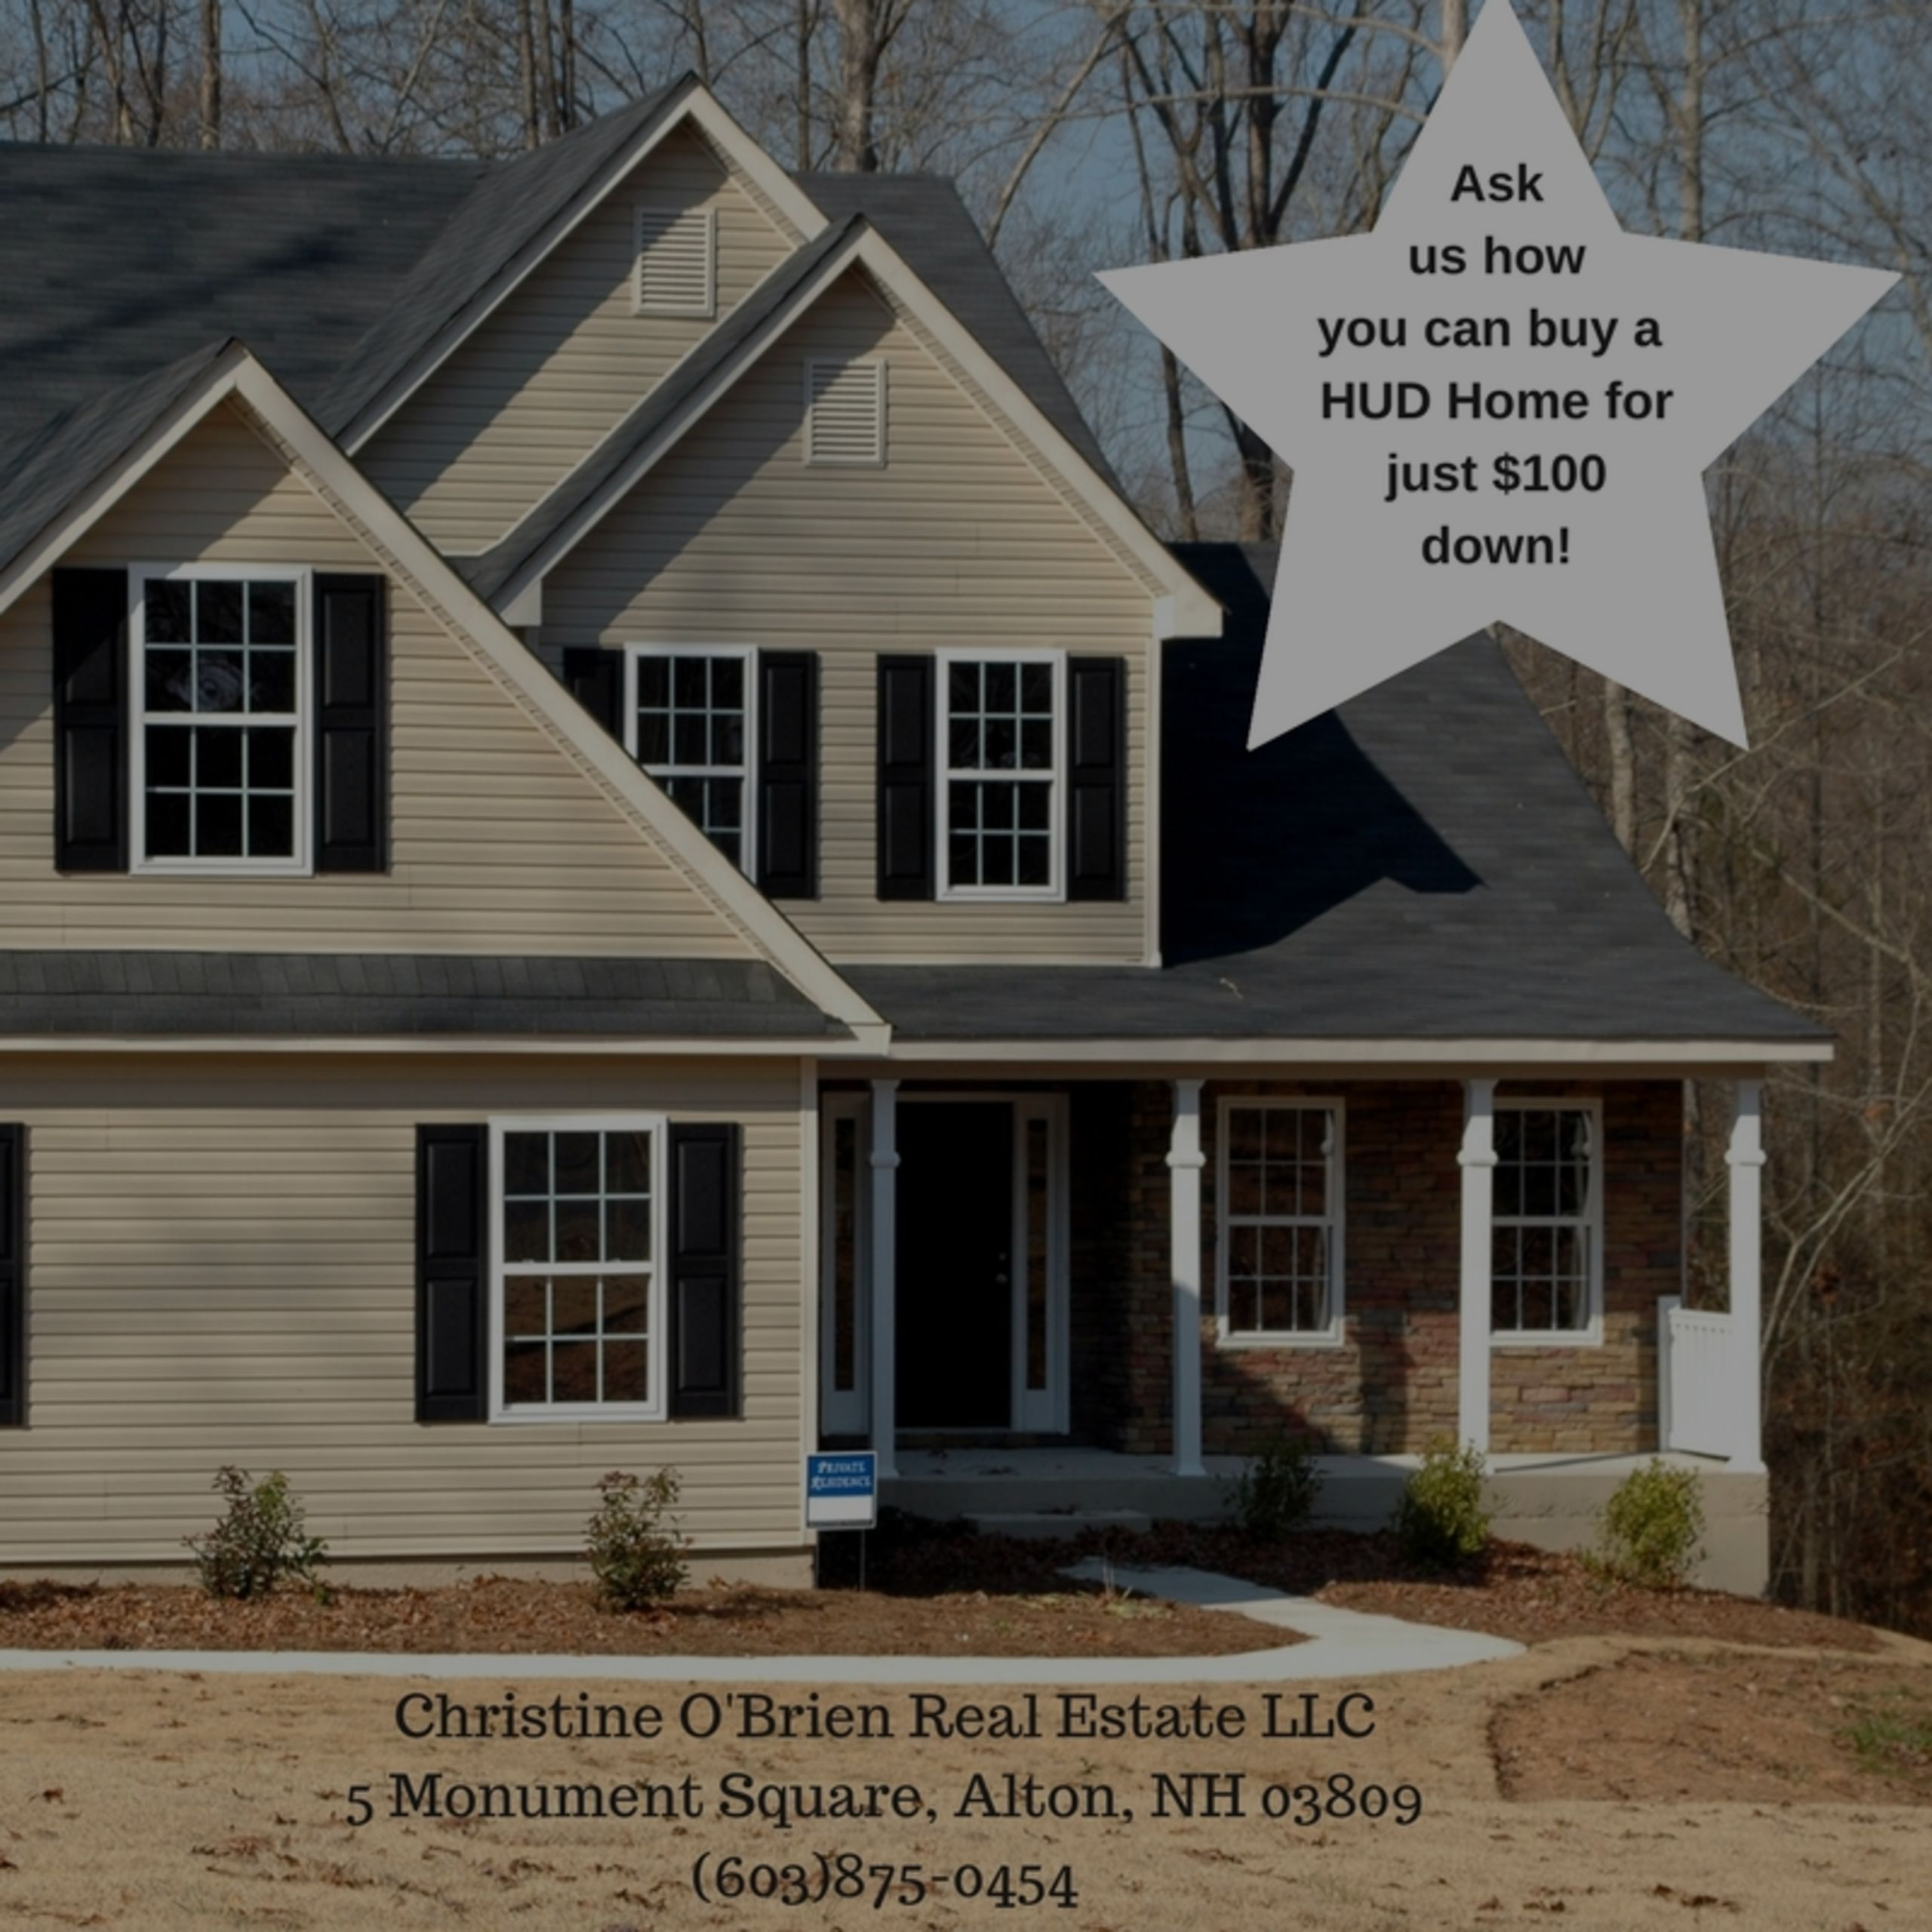 Buy a HUD Home for just $100 DOWN! (Restrictions apply)